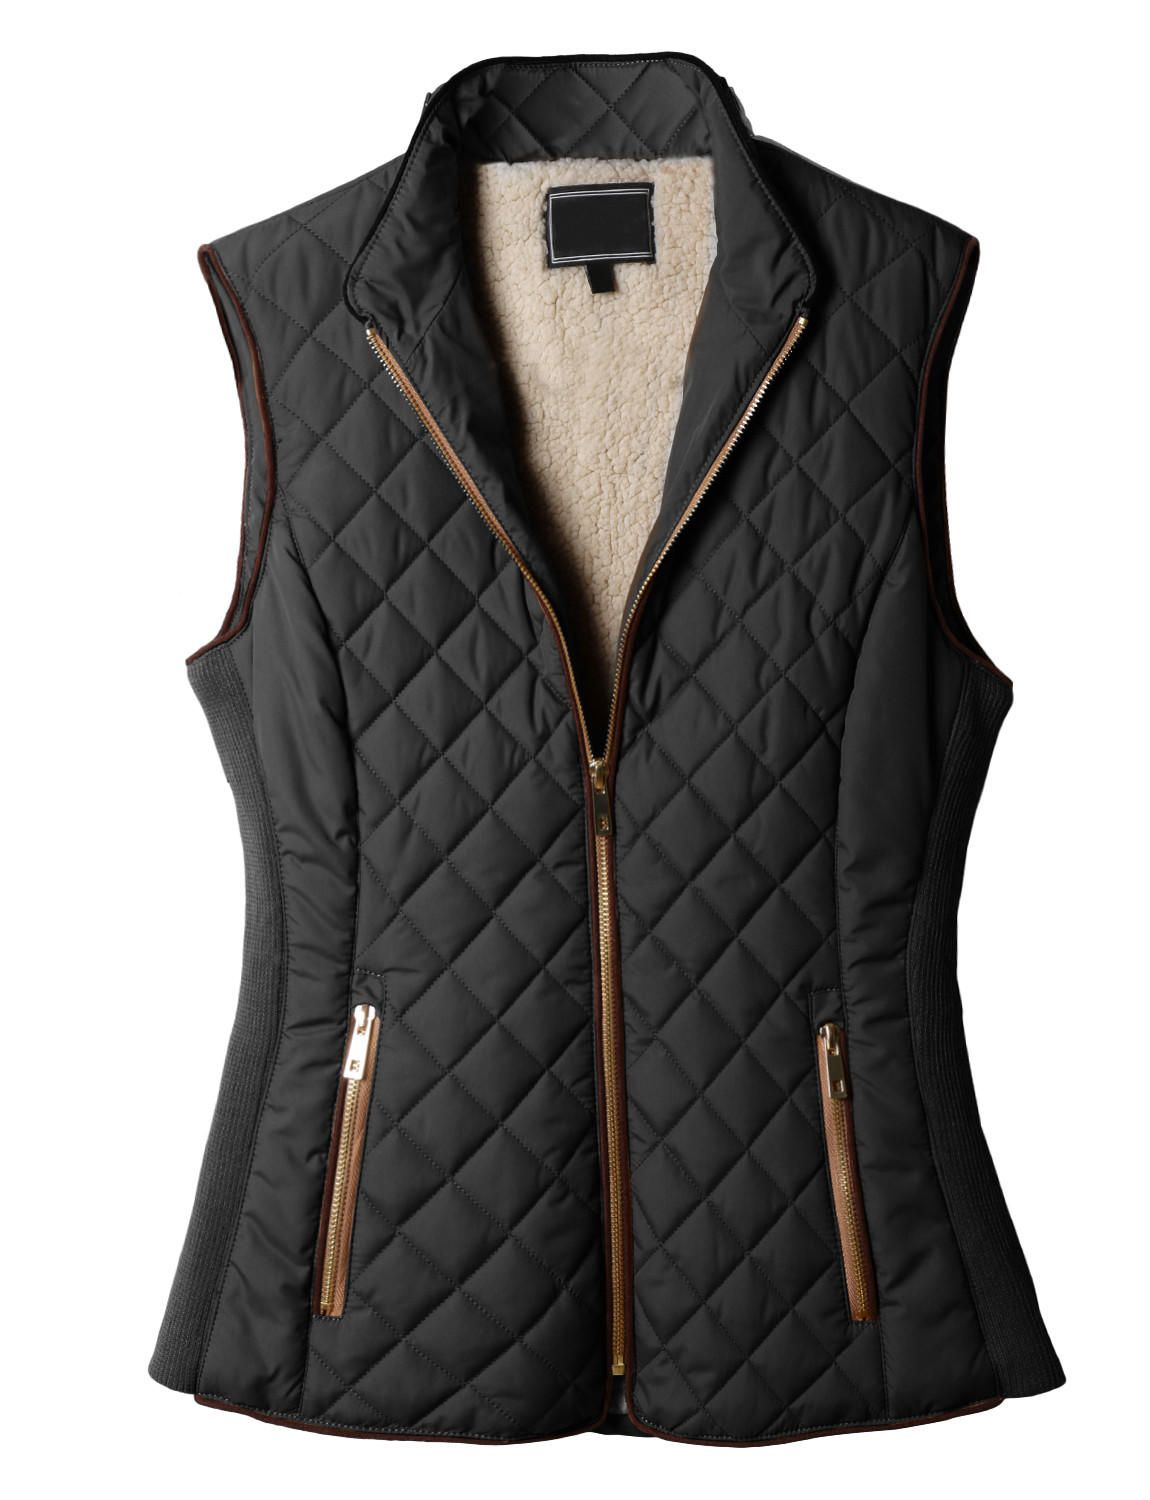 Le3no Womens Lightweight Quilted Puffer Jacket Vest With Pockets From Le3no Saved To New Wardrobe Casualstyle Stylis Quilted Puffer Jacket Clothes Fashion [ 1500 x 1150 Pixel ]